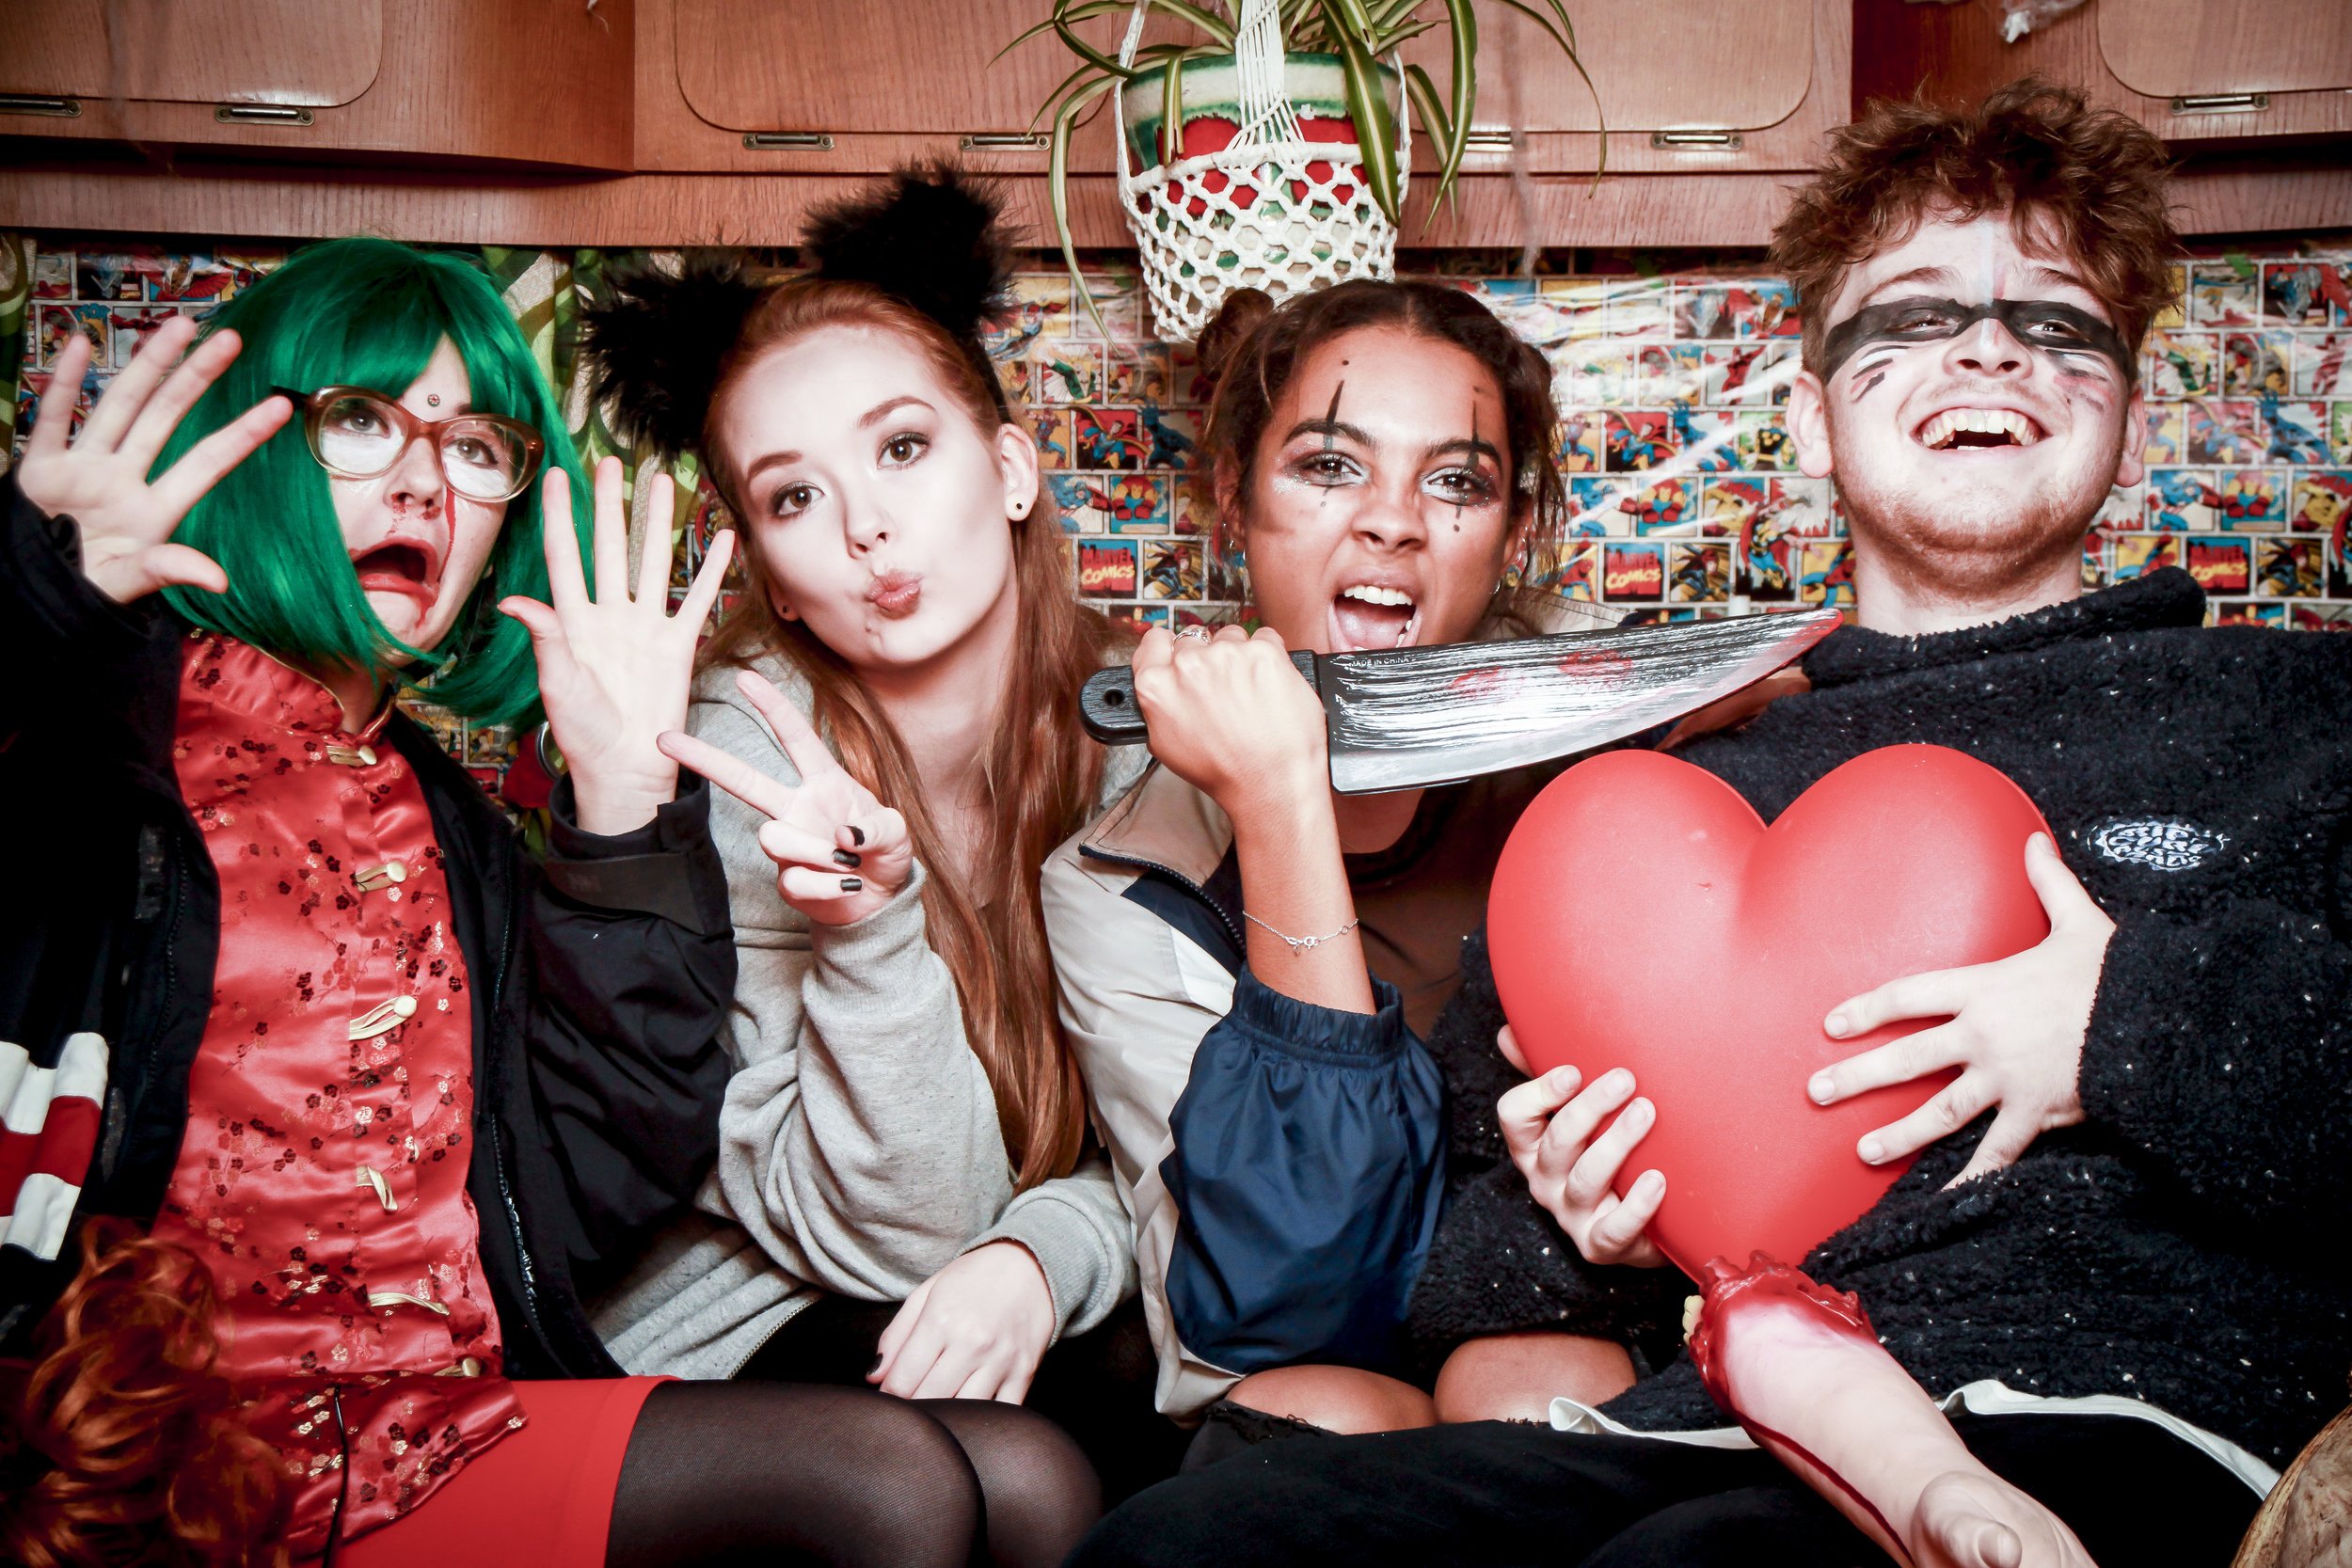 the masked ball photobooth